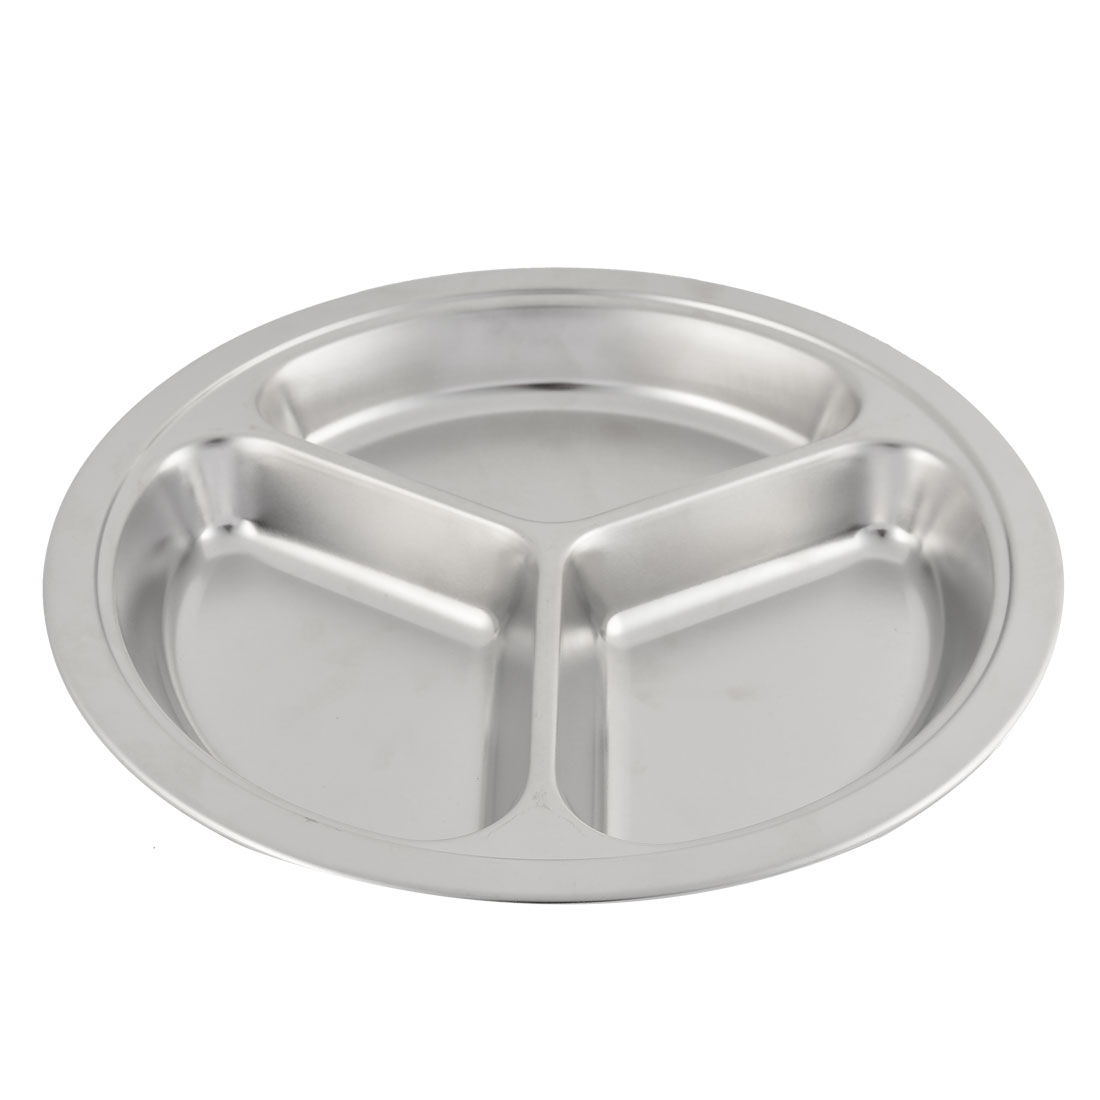 Home Restaurant Metal Round Shaped Tableware Three Compartments Dish Plate